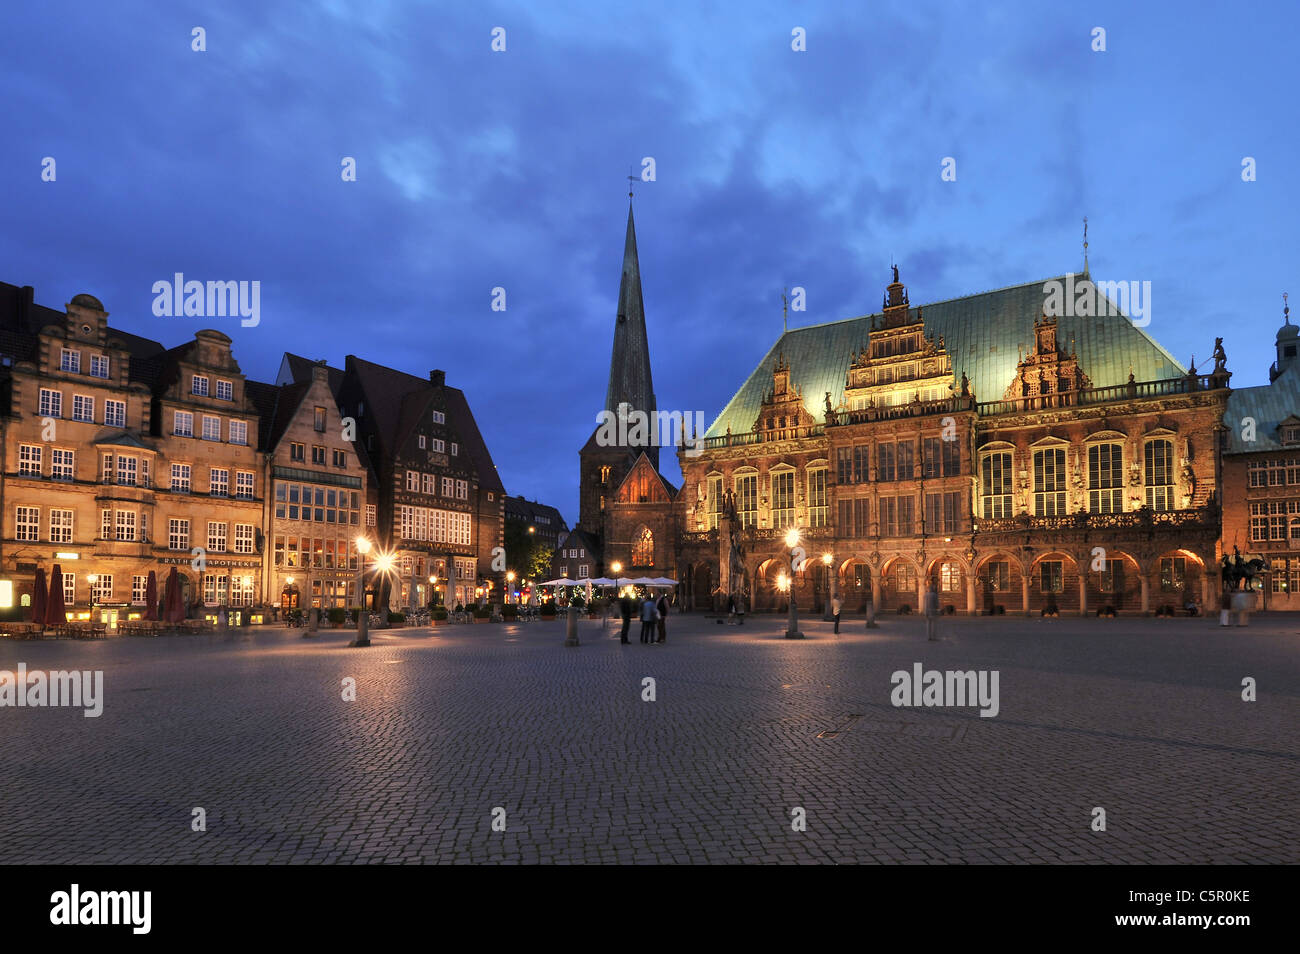 market square of Bremen in Northern Germany with old town hall and church unserer lieb frauen - Stock Image